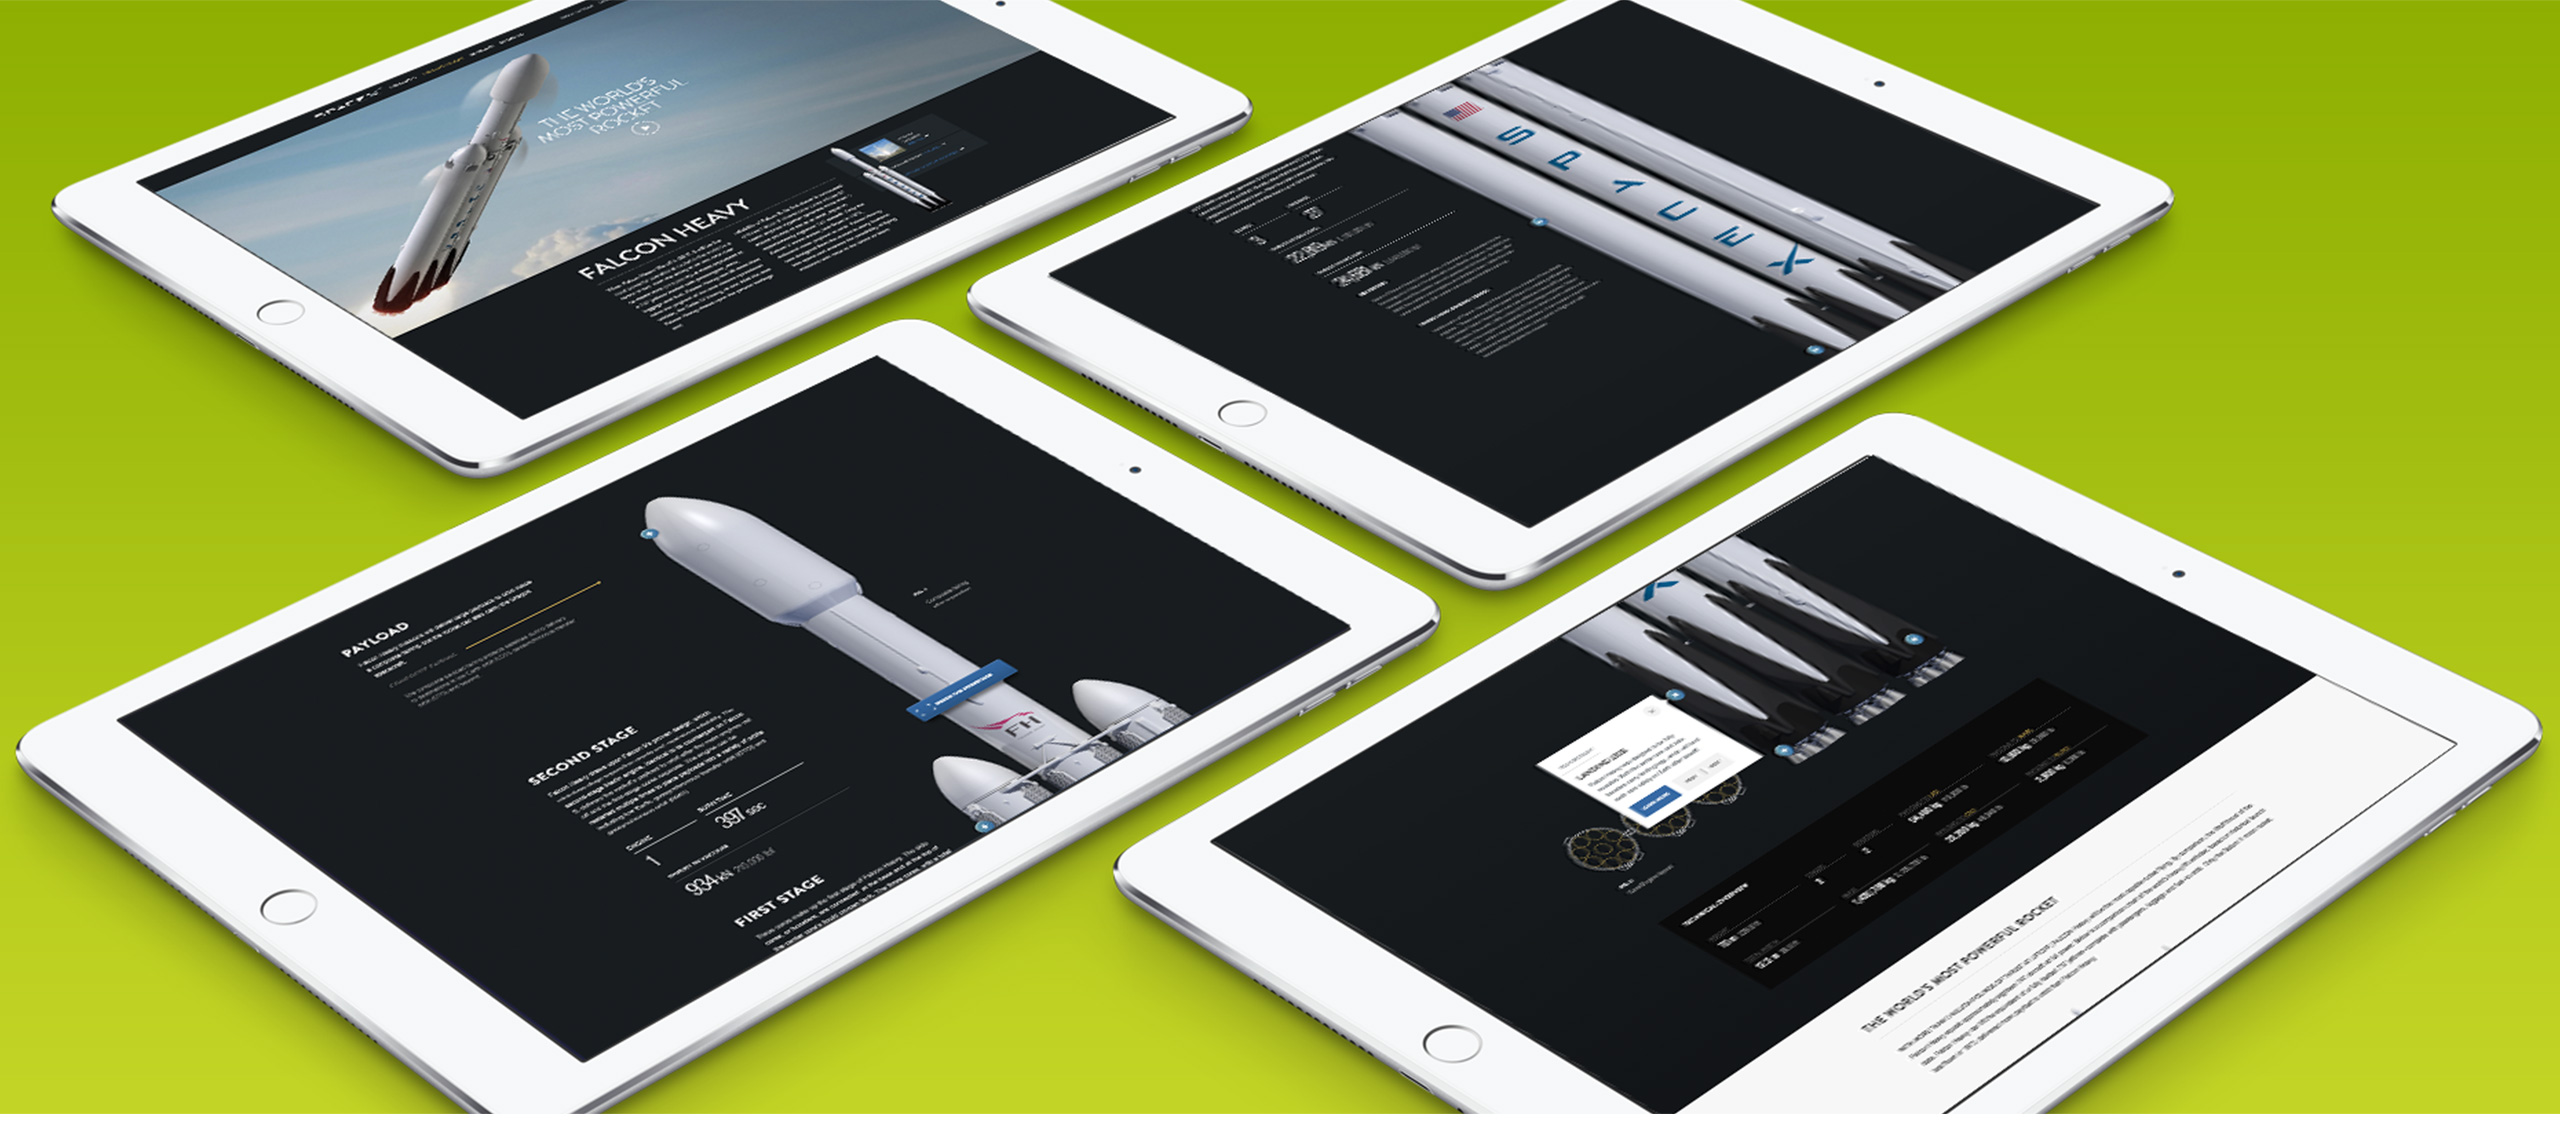 more spacex on ipad